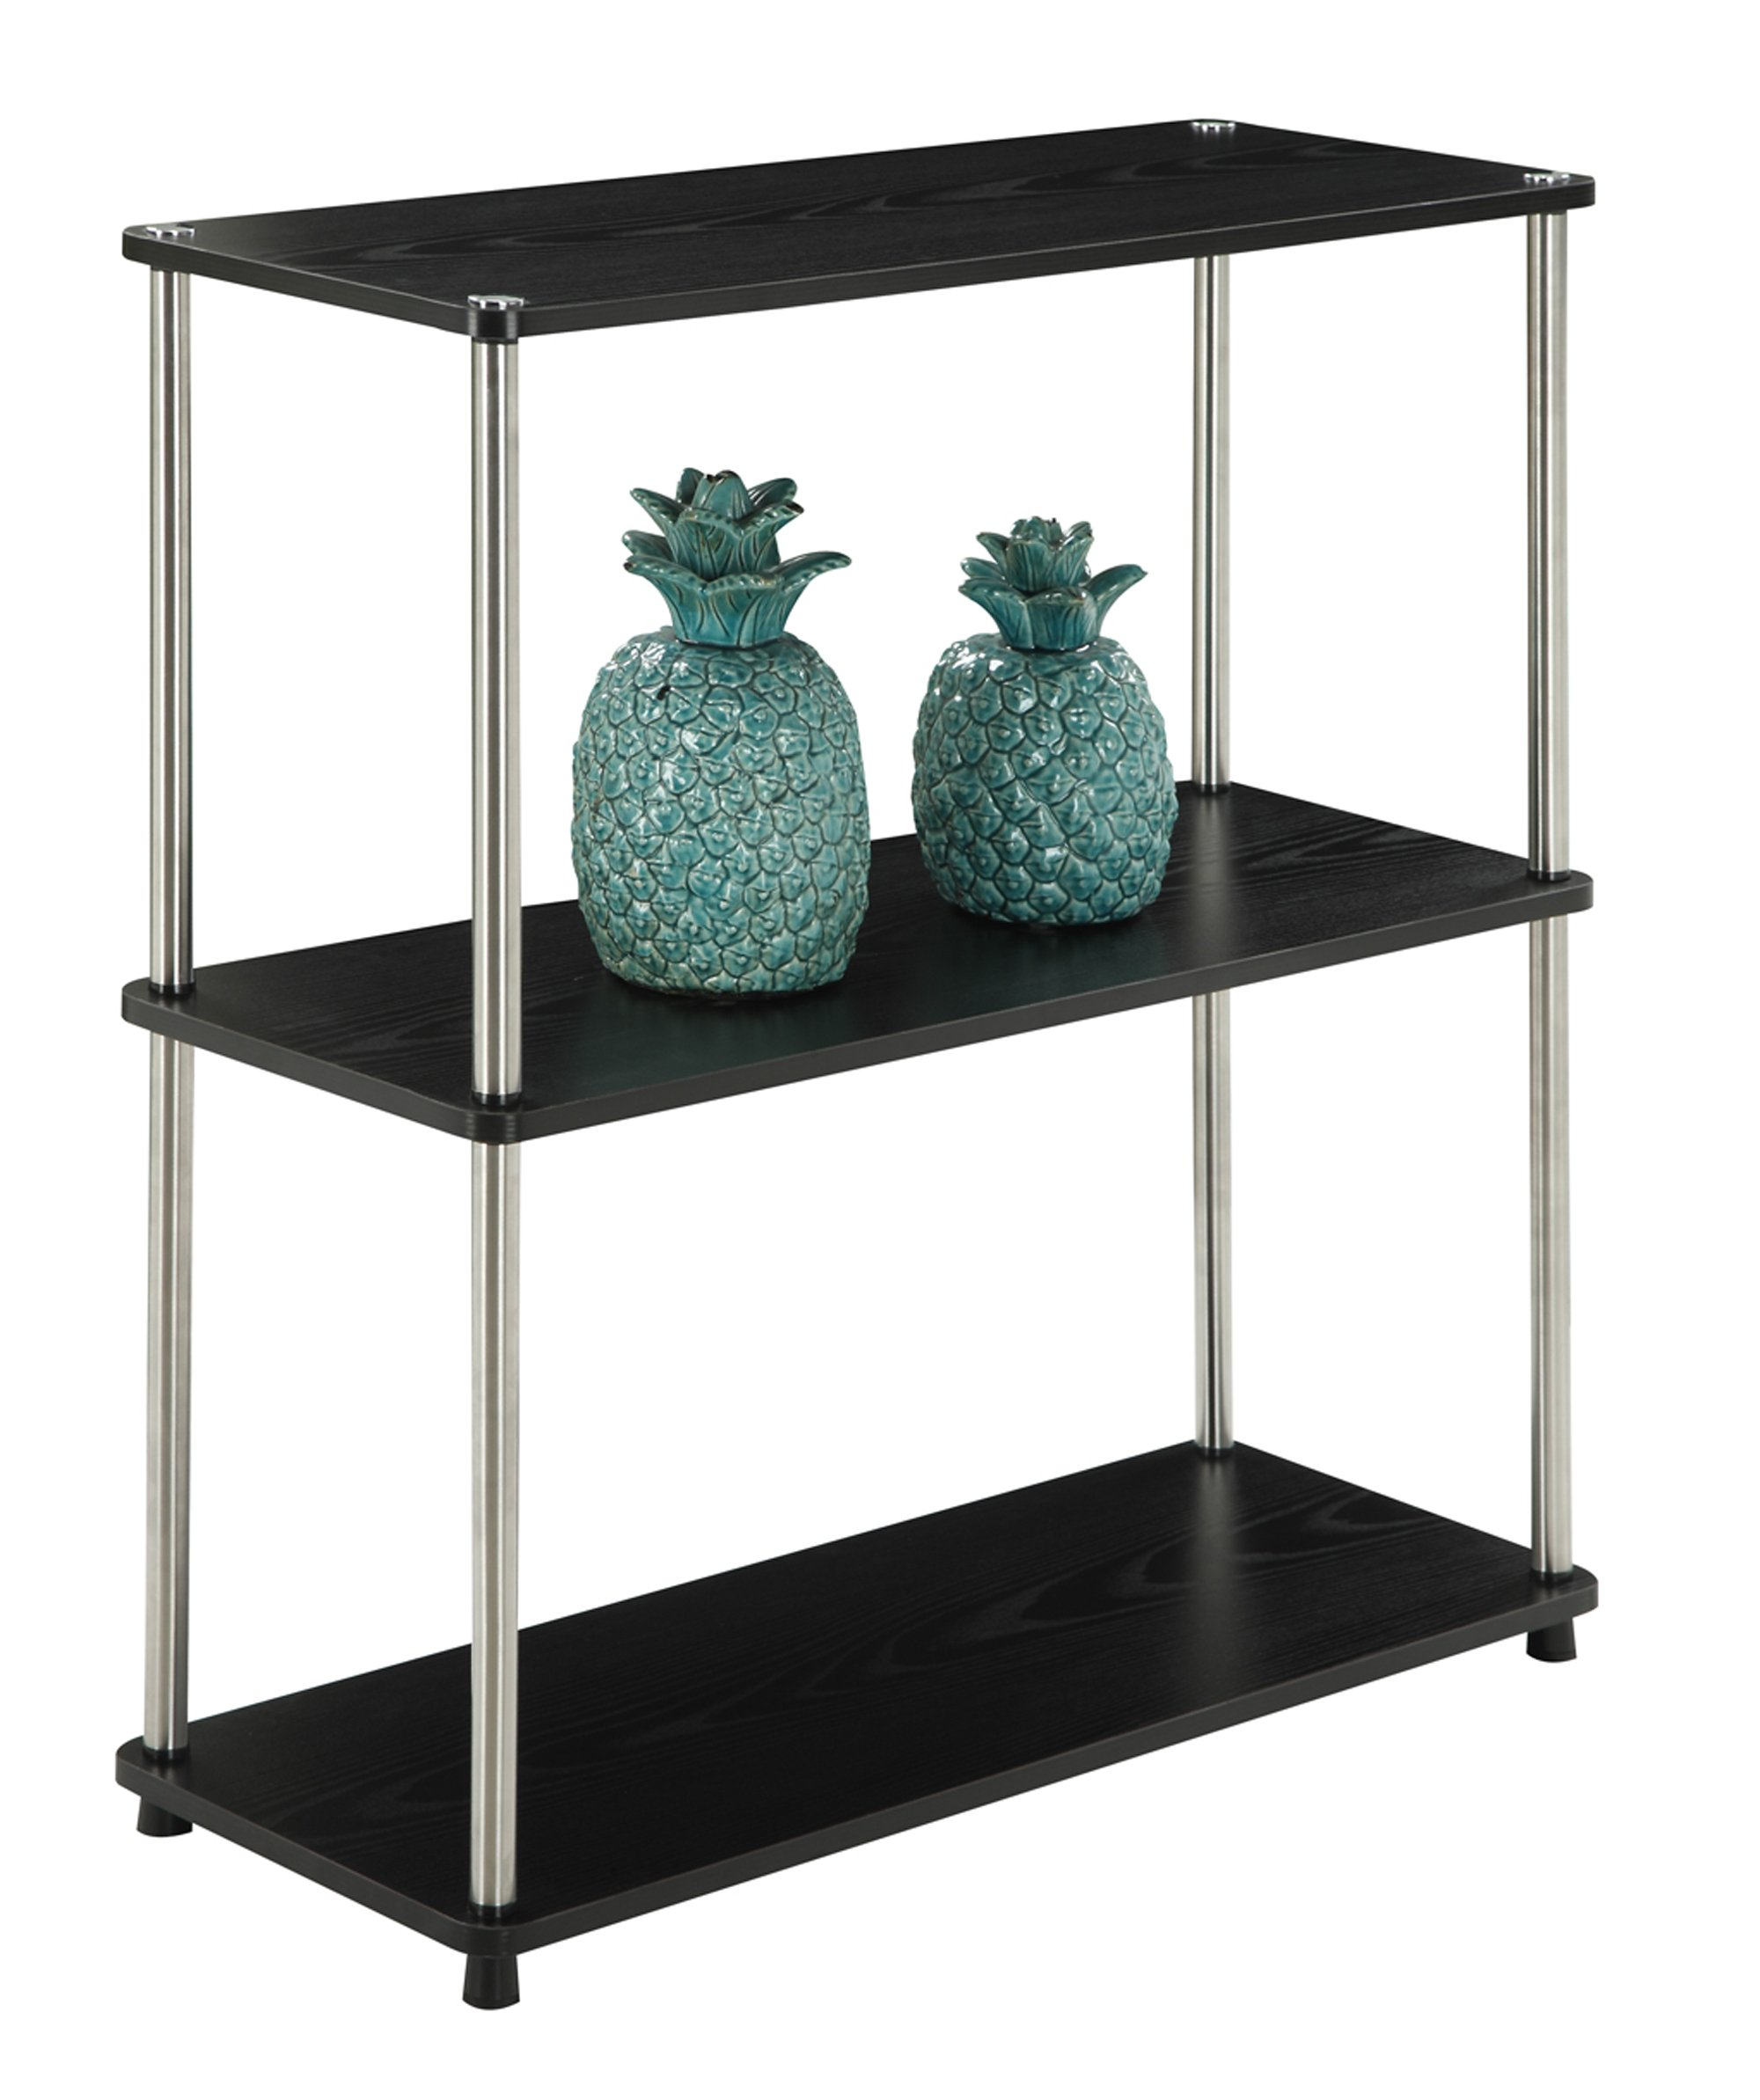 Convenience Concepts Designs2Go 3 Tier Bookshelf, Black - No tools required Large shelves for display Beautiful woodgrain finish - living-room-furniture, living-room, bookcases-bookshelves - 81GeUTZvwpL -